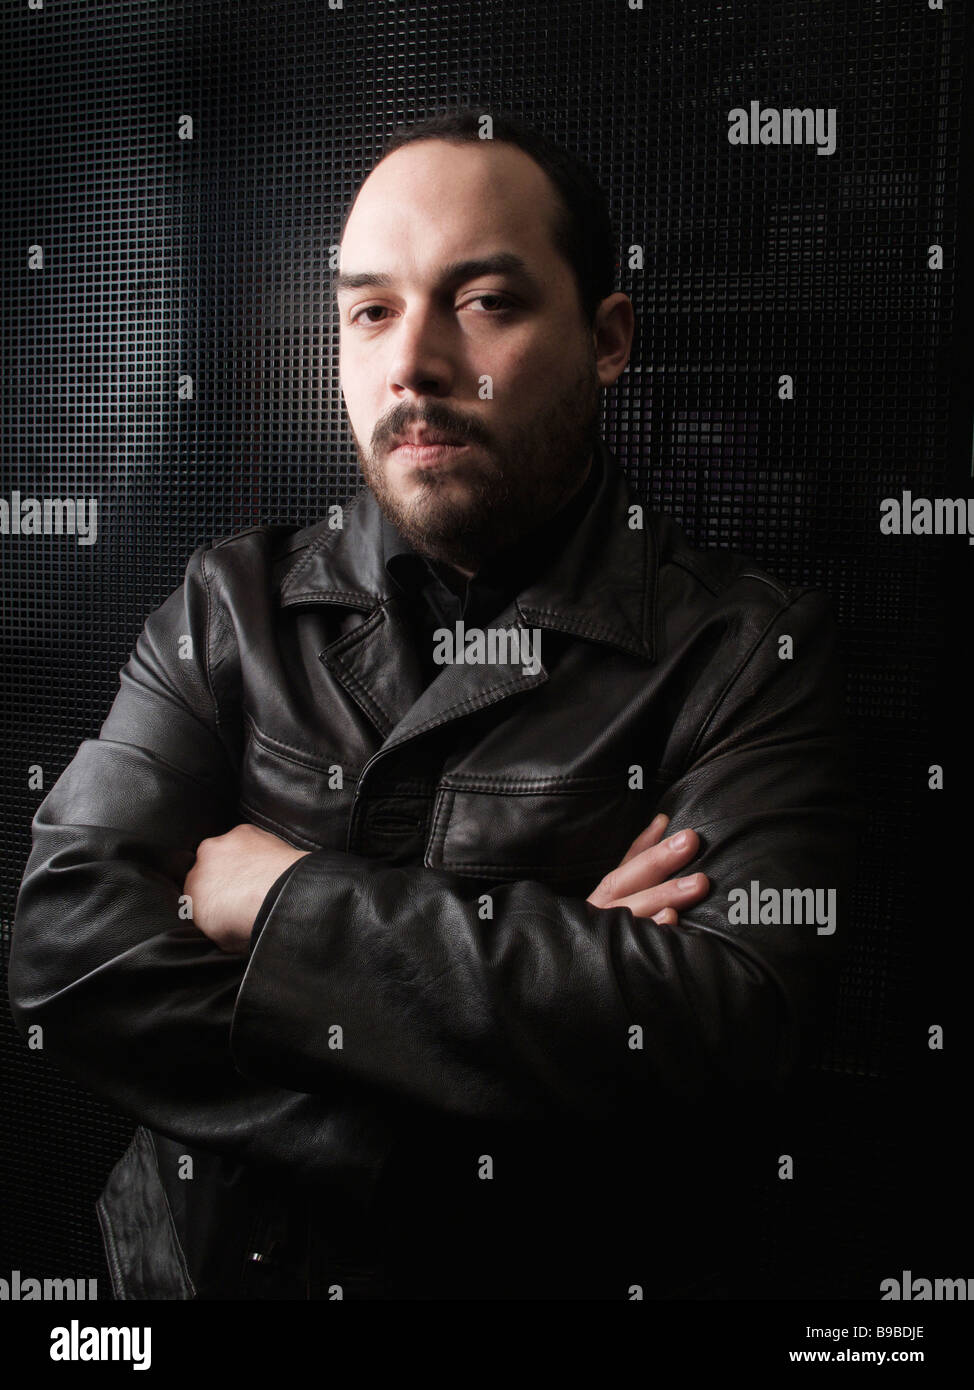 Portrait of mexican man - Stock Image